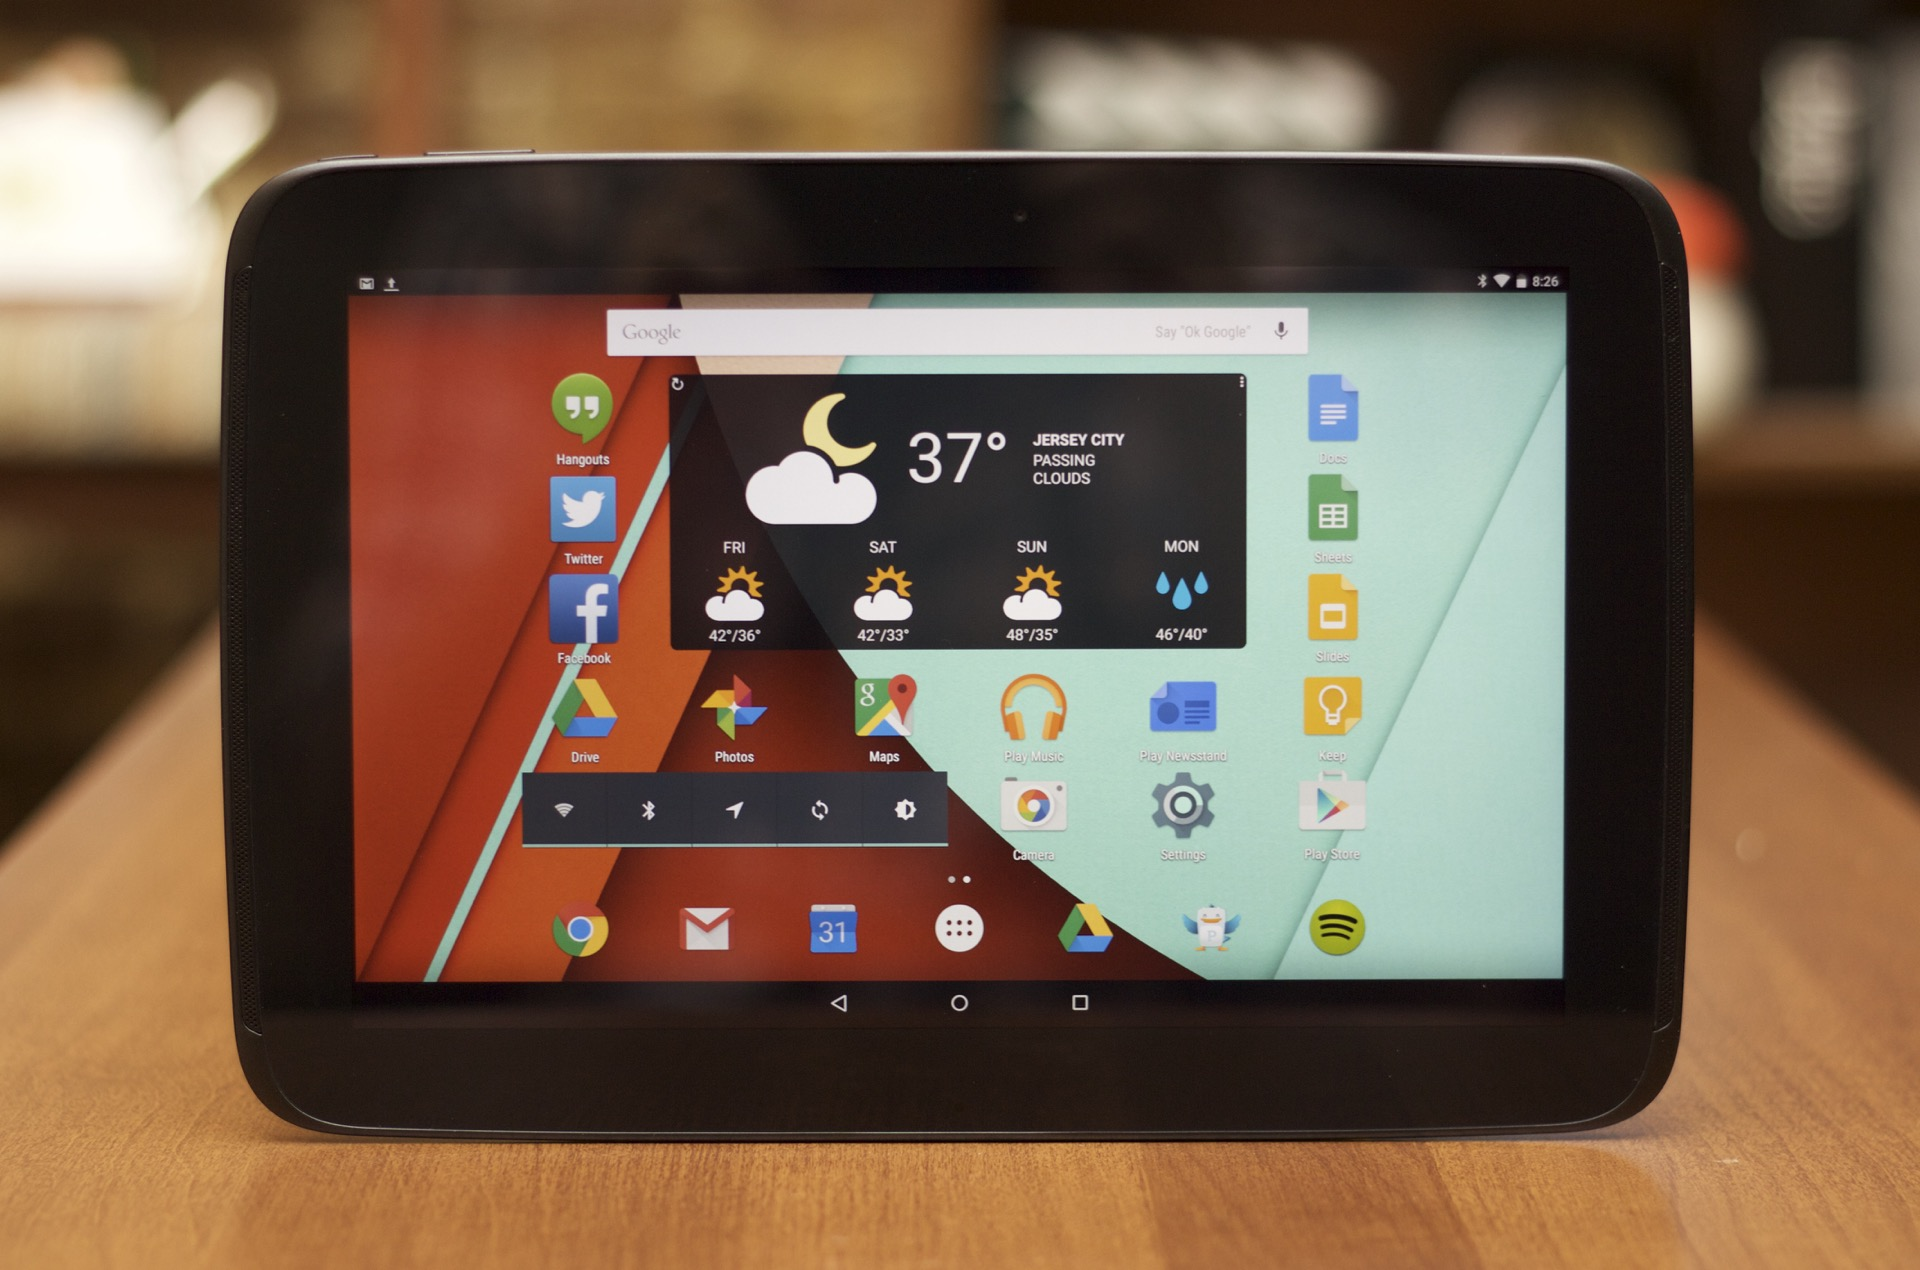 The Nexus 10 is still nice enough hardware, but Lollipop and Material Design don't do it any favors.